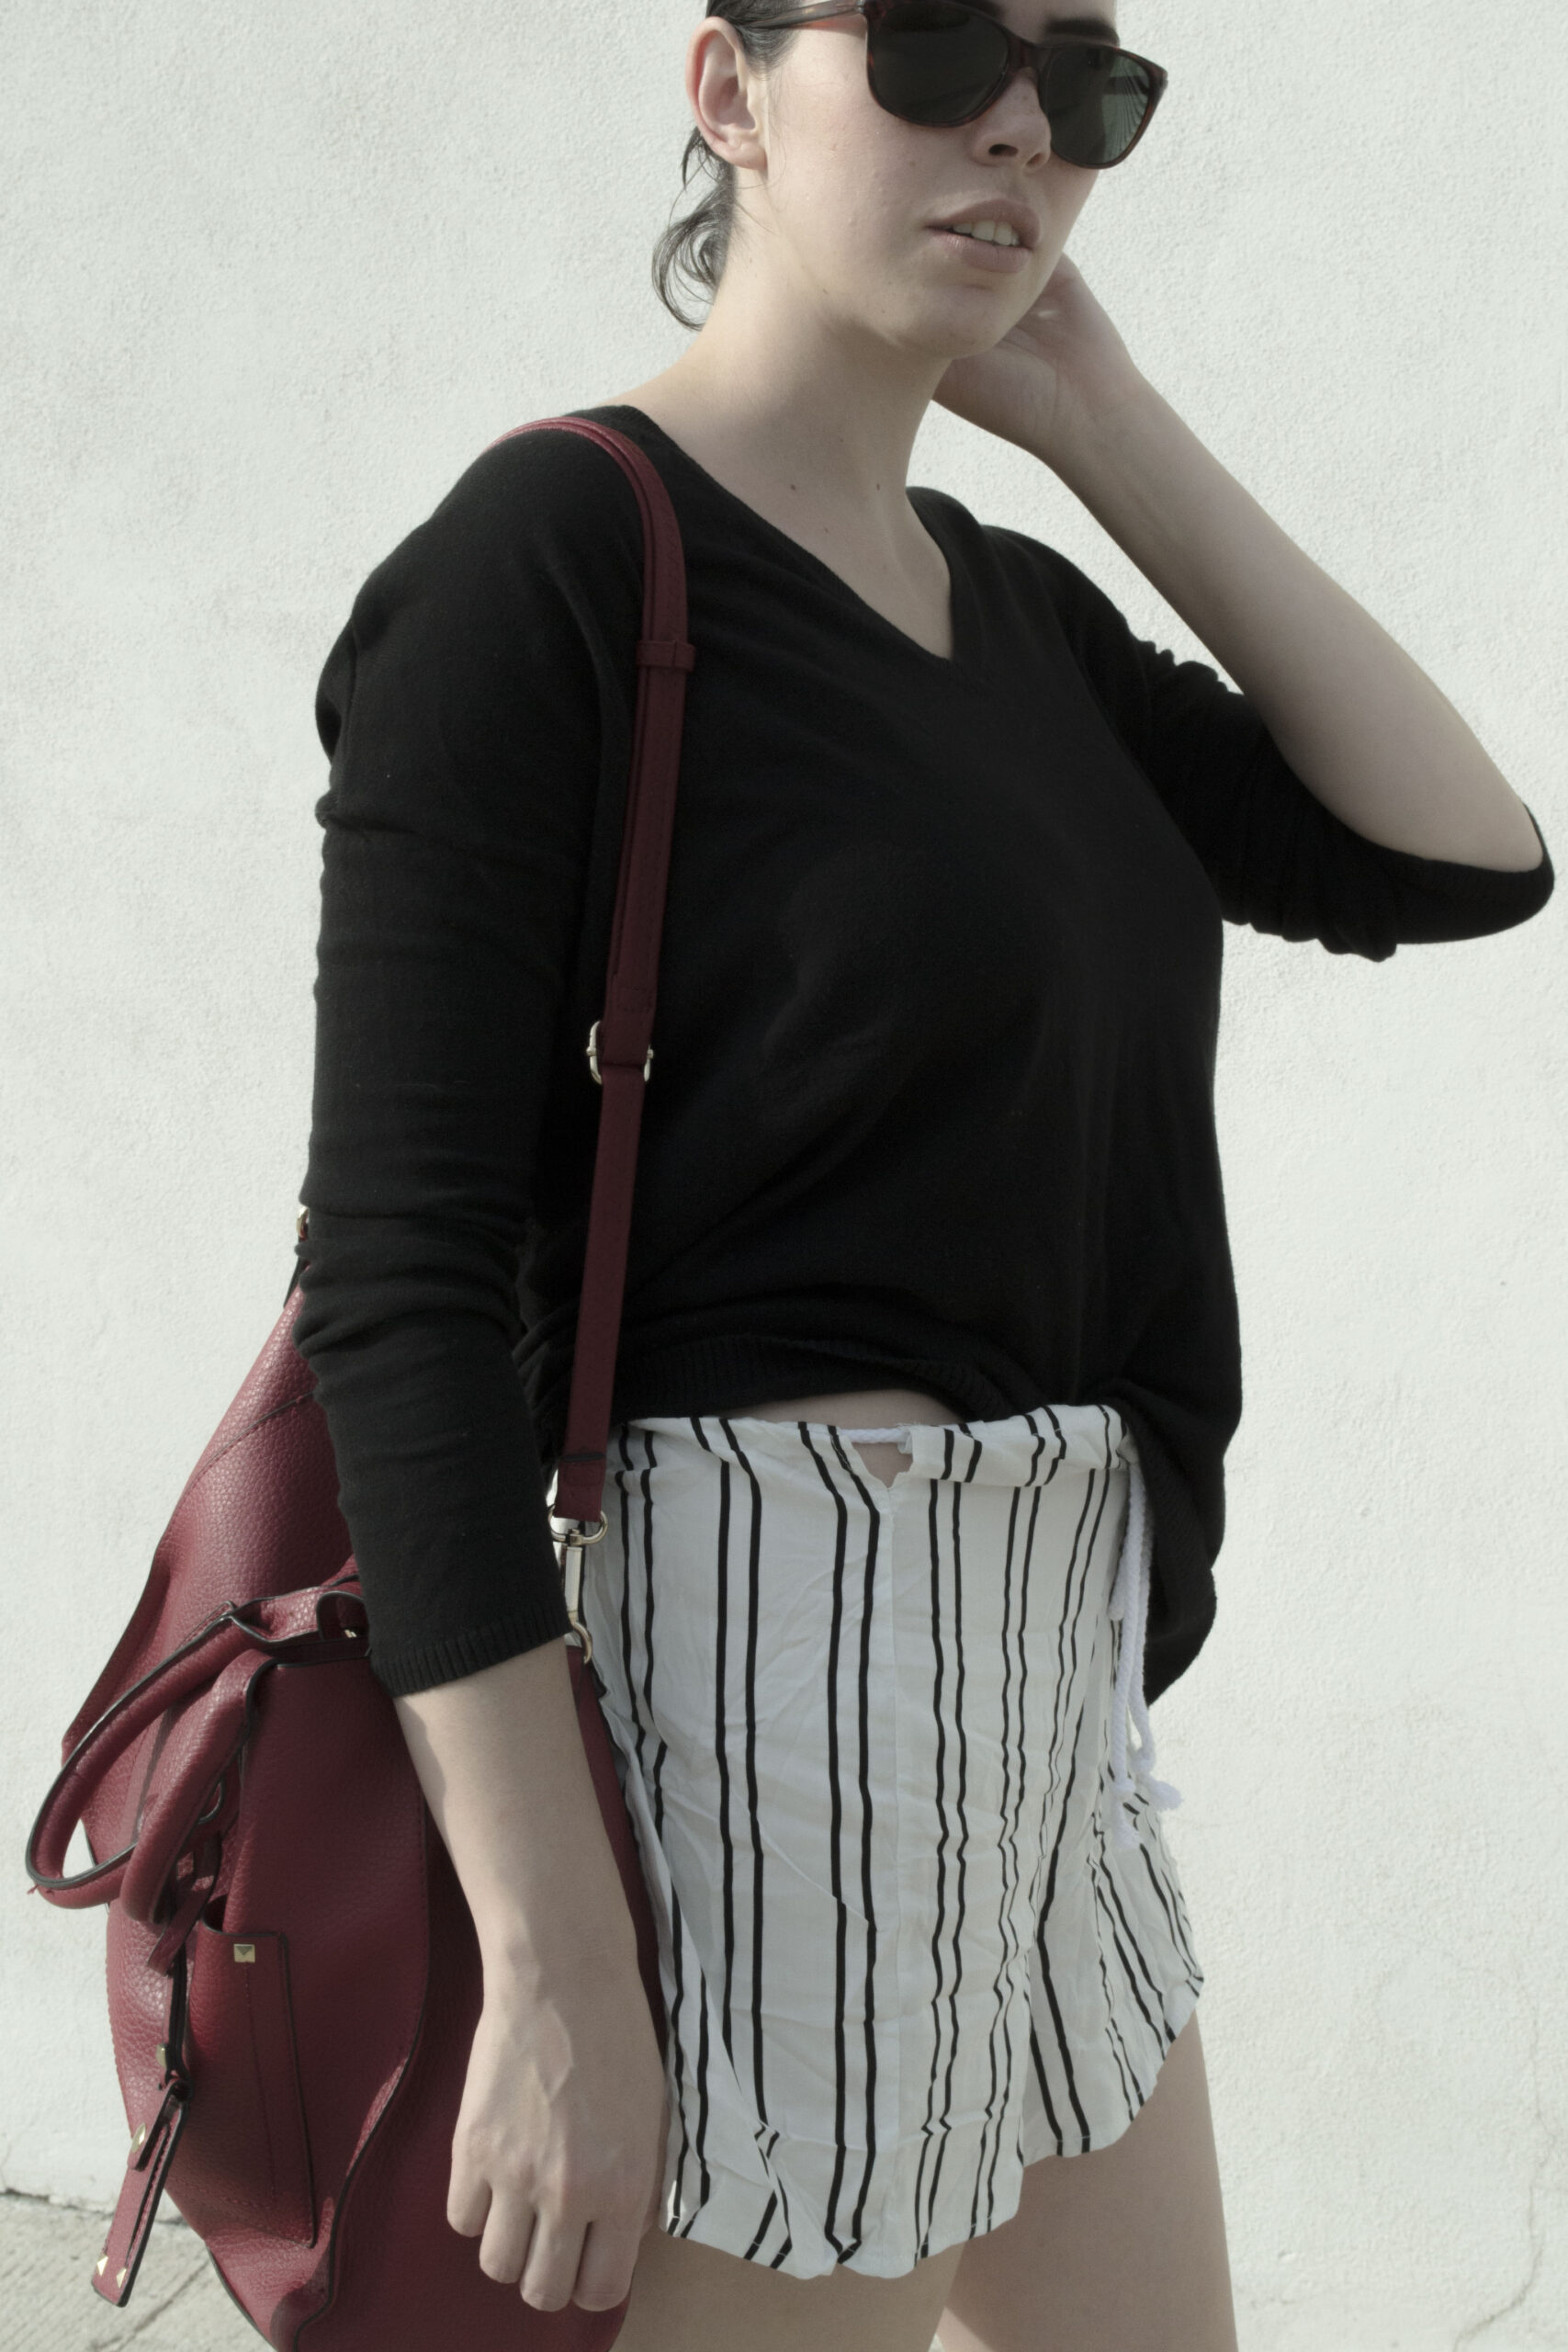 daniela soriano, outfit, indian summer, v neck sweater, black, zara, striped shorts, black and white stripes, gold slip on sneakers, metallic, big bag, red bag,